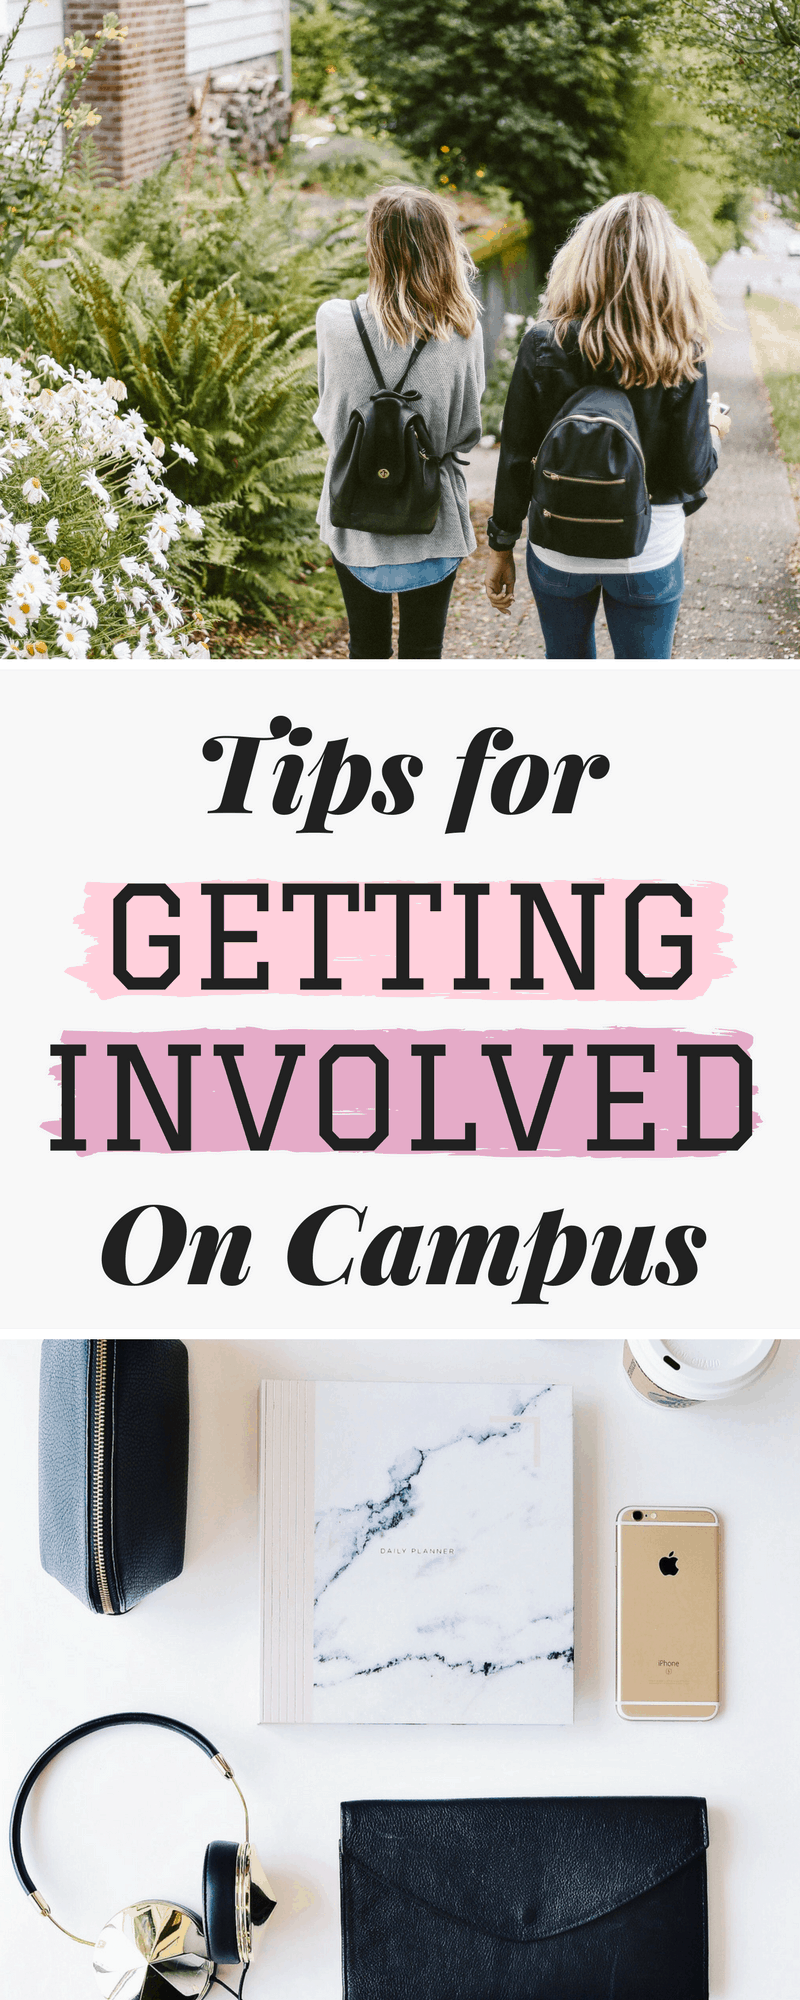 Our best tips for getting involved on campus